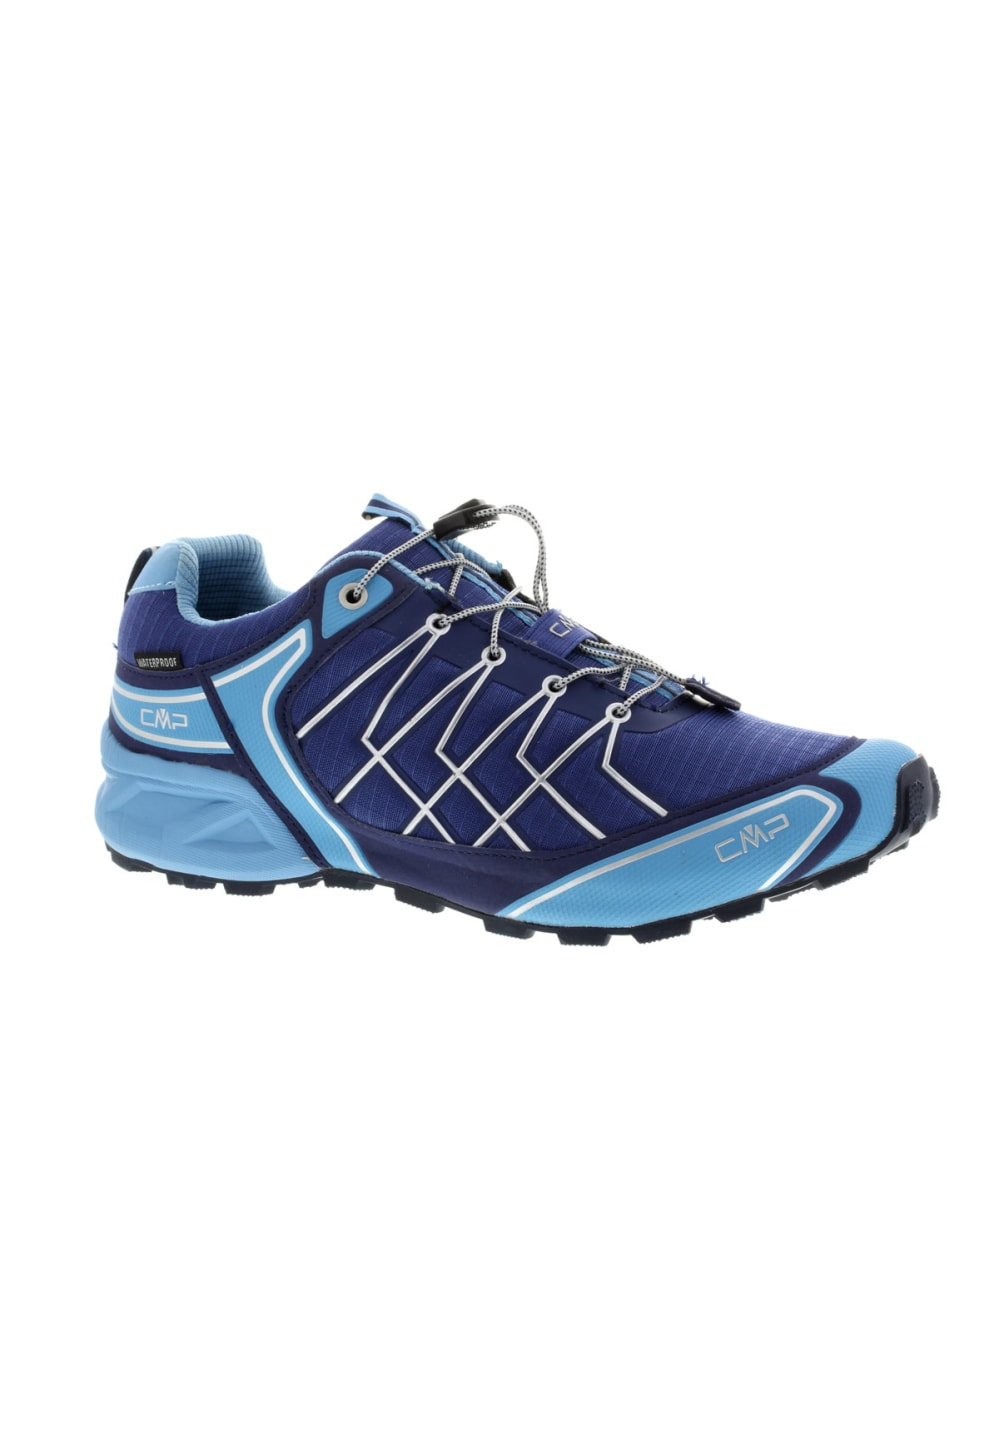 Campagnolo Super X Trail Femmes Chaussures running